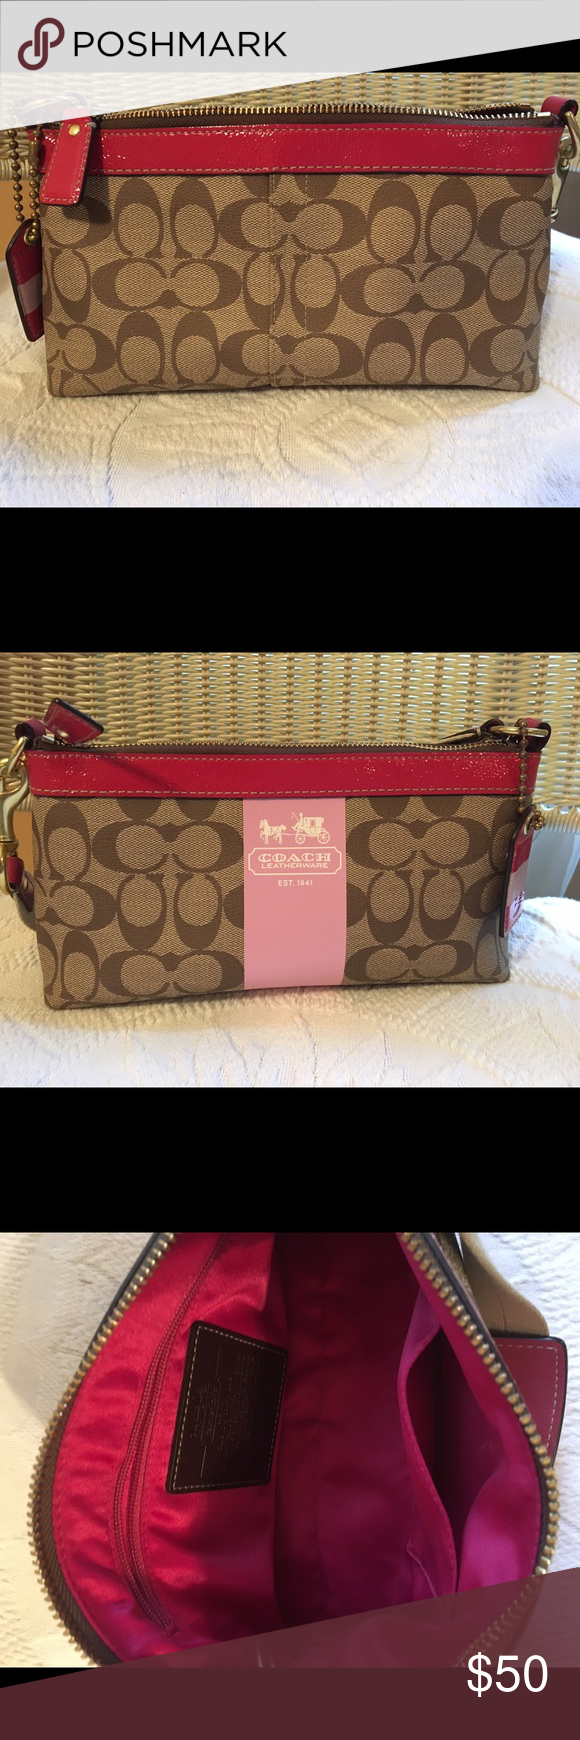 "Coach purse Classic ""C"" print leather Coach purse Coach Bags Mini Bags"